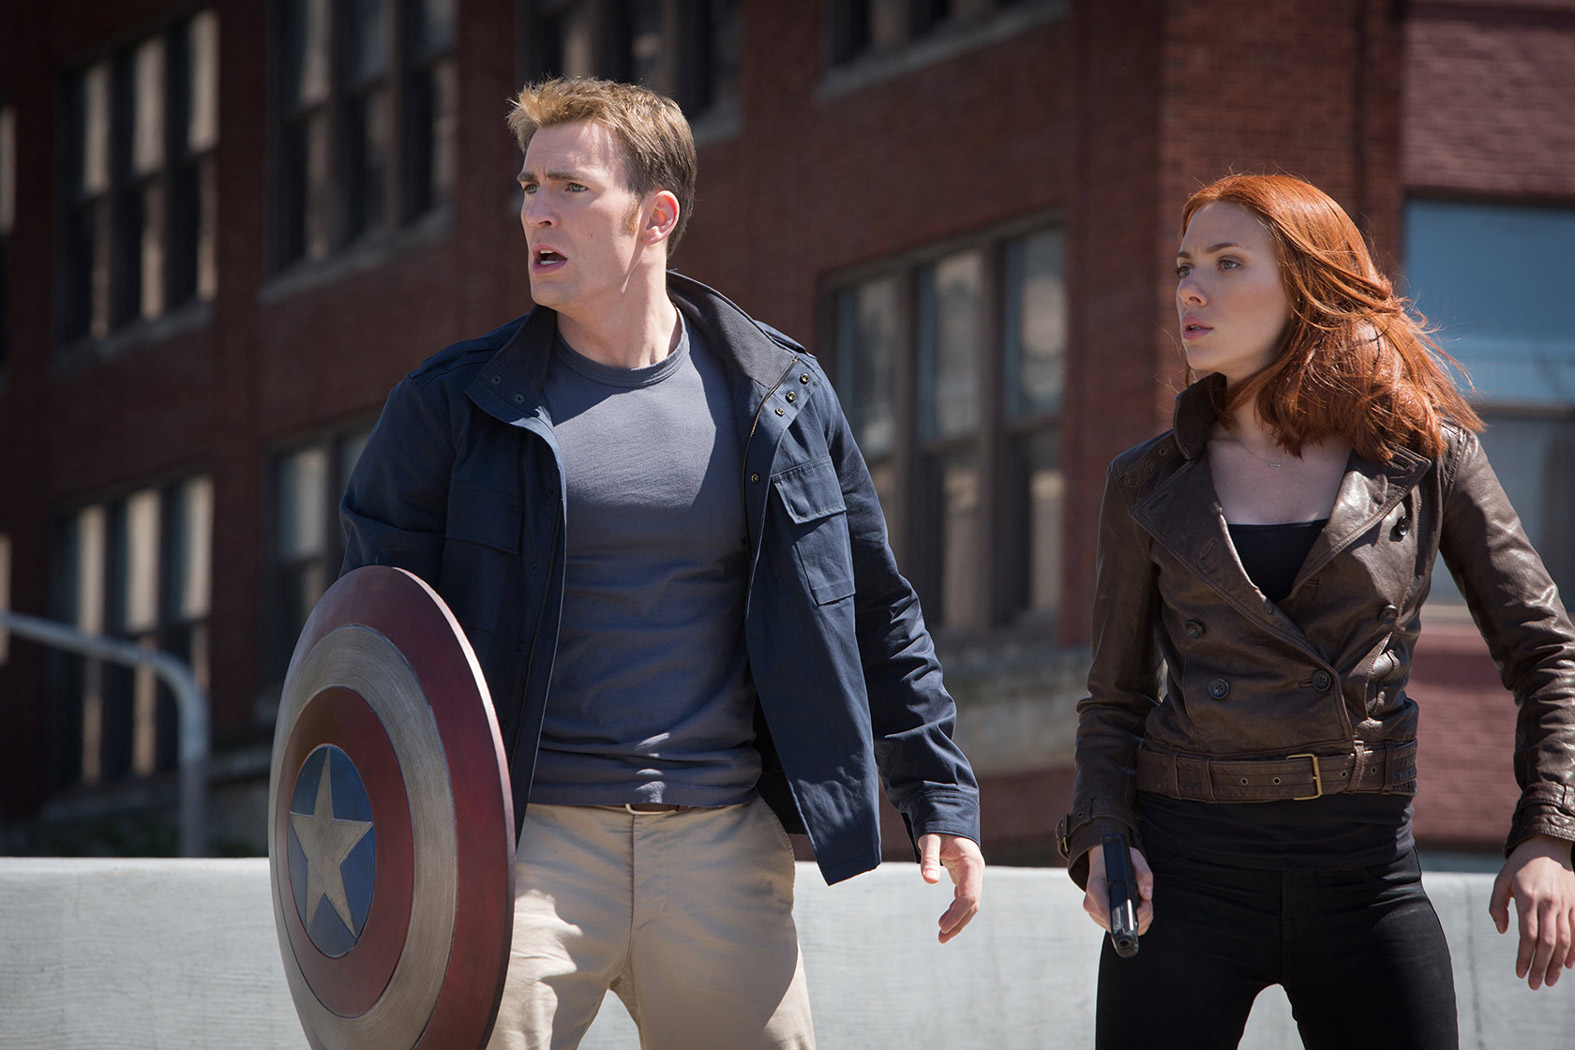 Captain-America-2-Official-Photo-Steve-Rogers-Black-Widow-Regular-Clothes